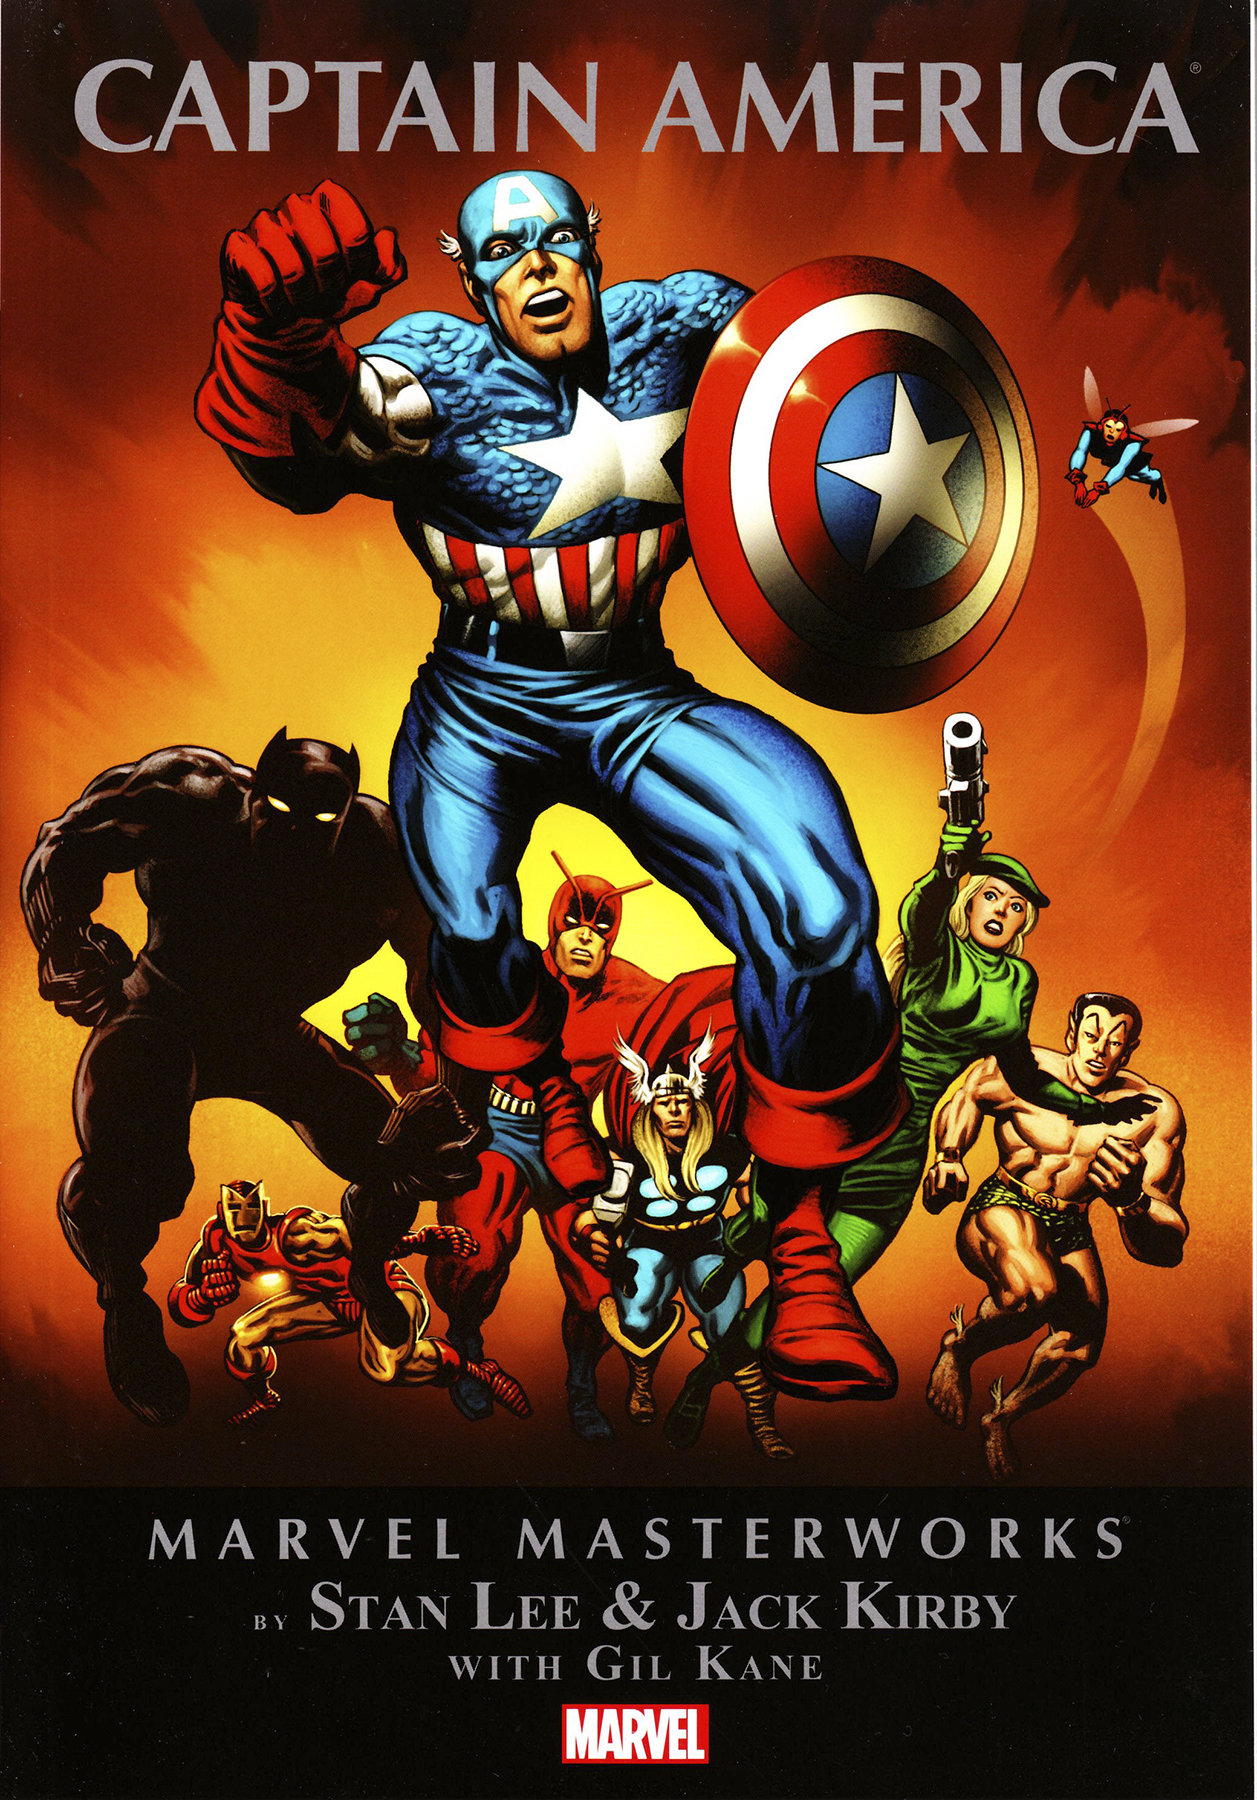 MMW CAPTAIN AMERICA TP VOL 02